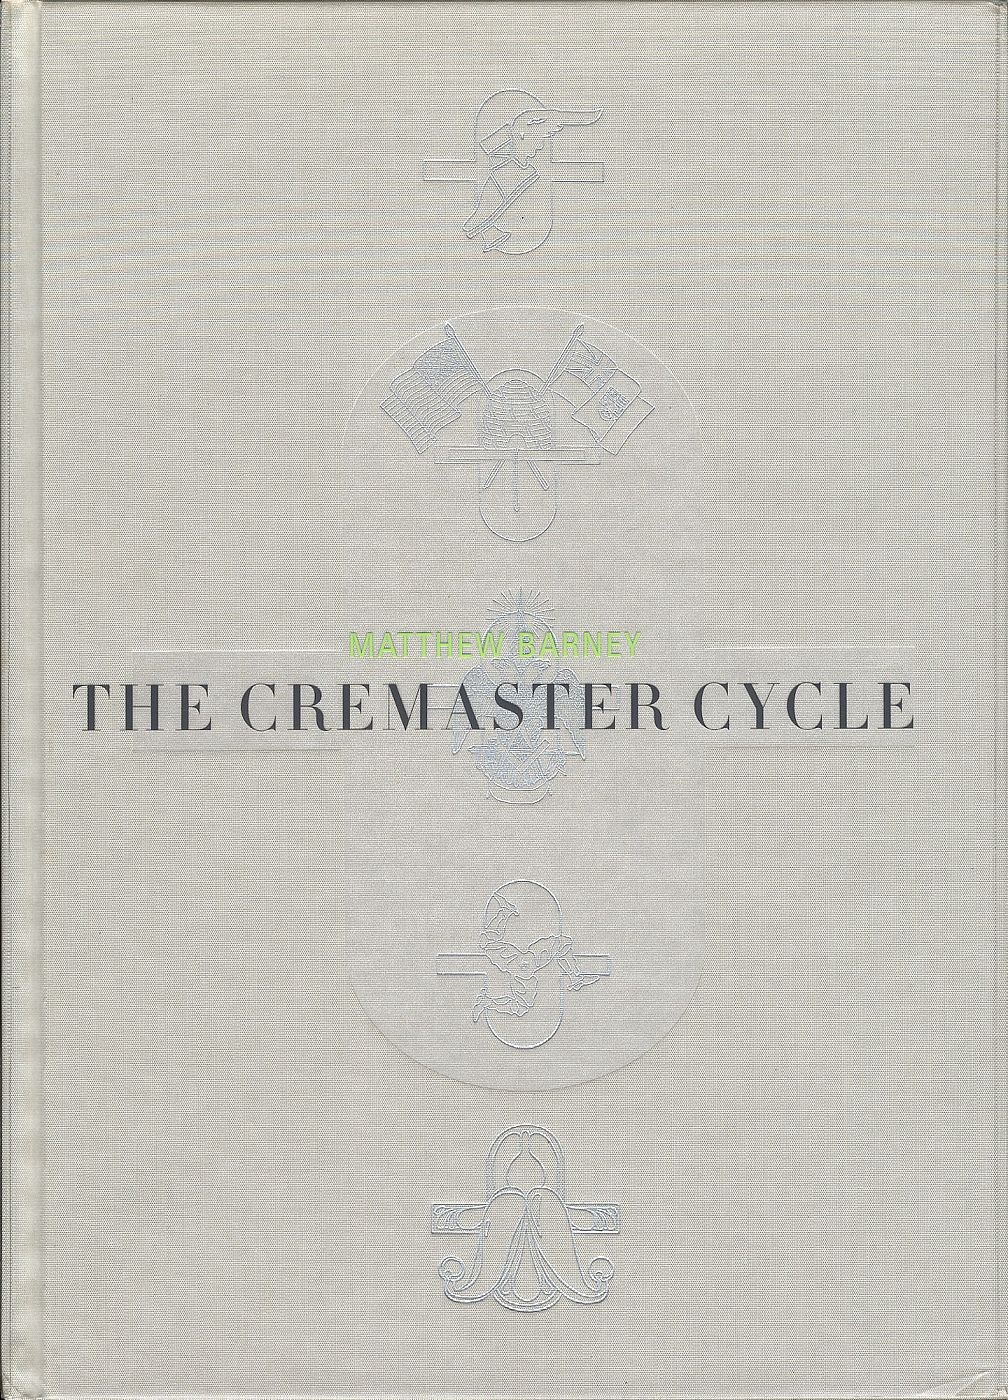 Matthew Barney: The Cremaster Cycle (Hardcover Edition)